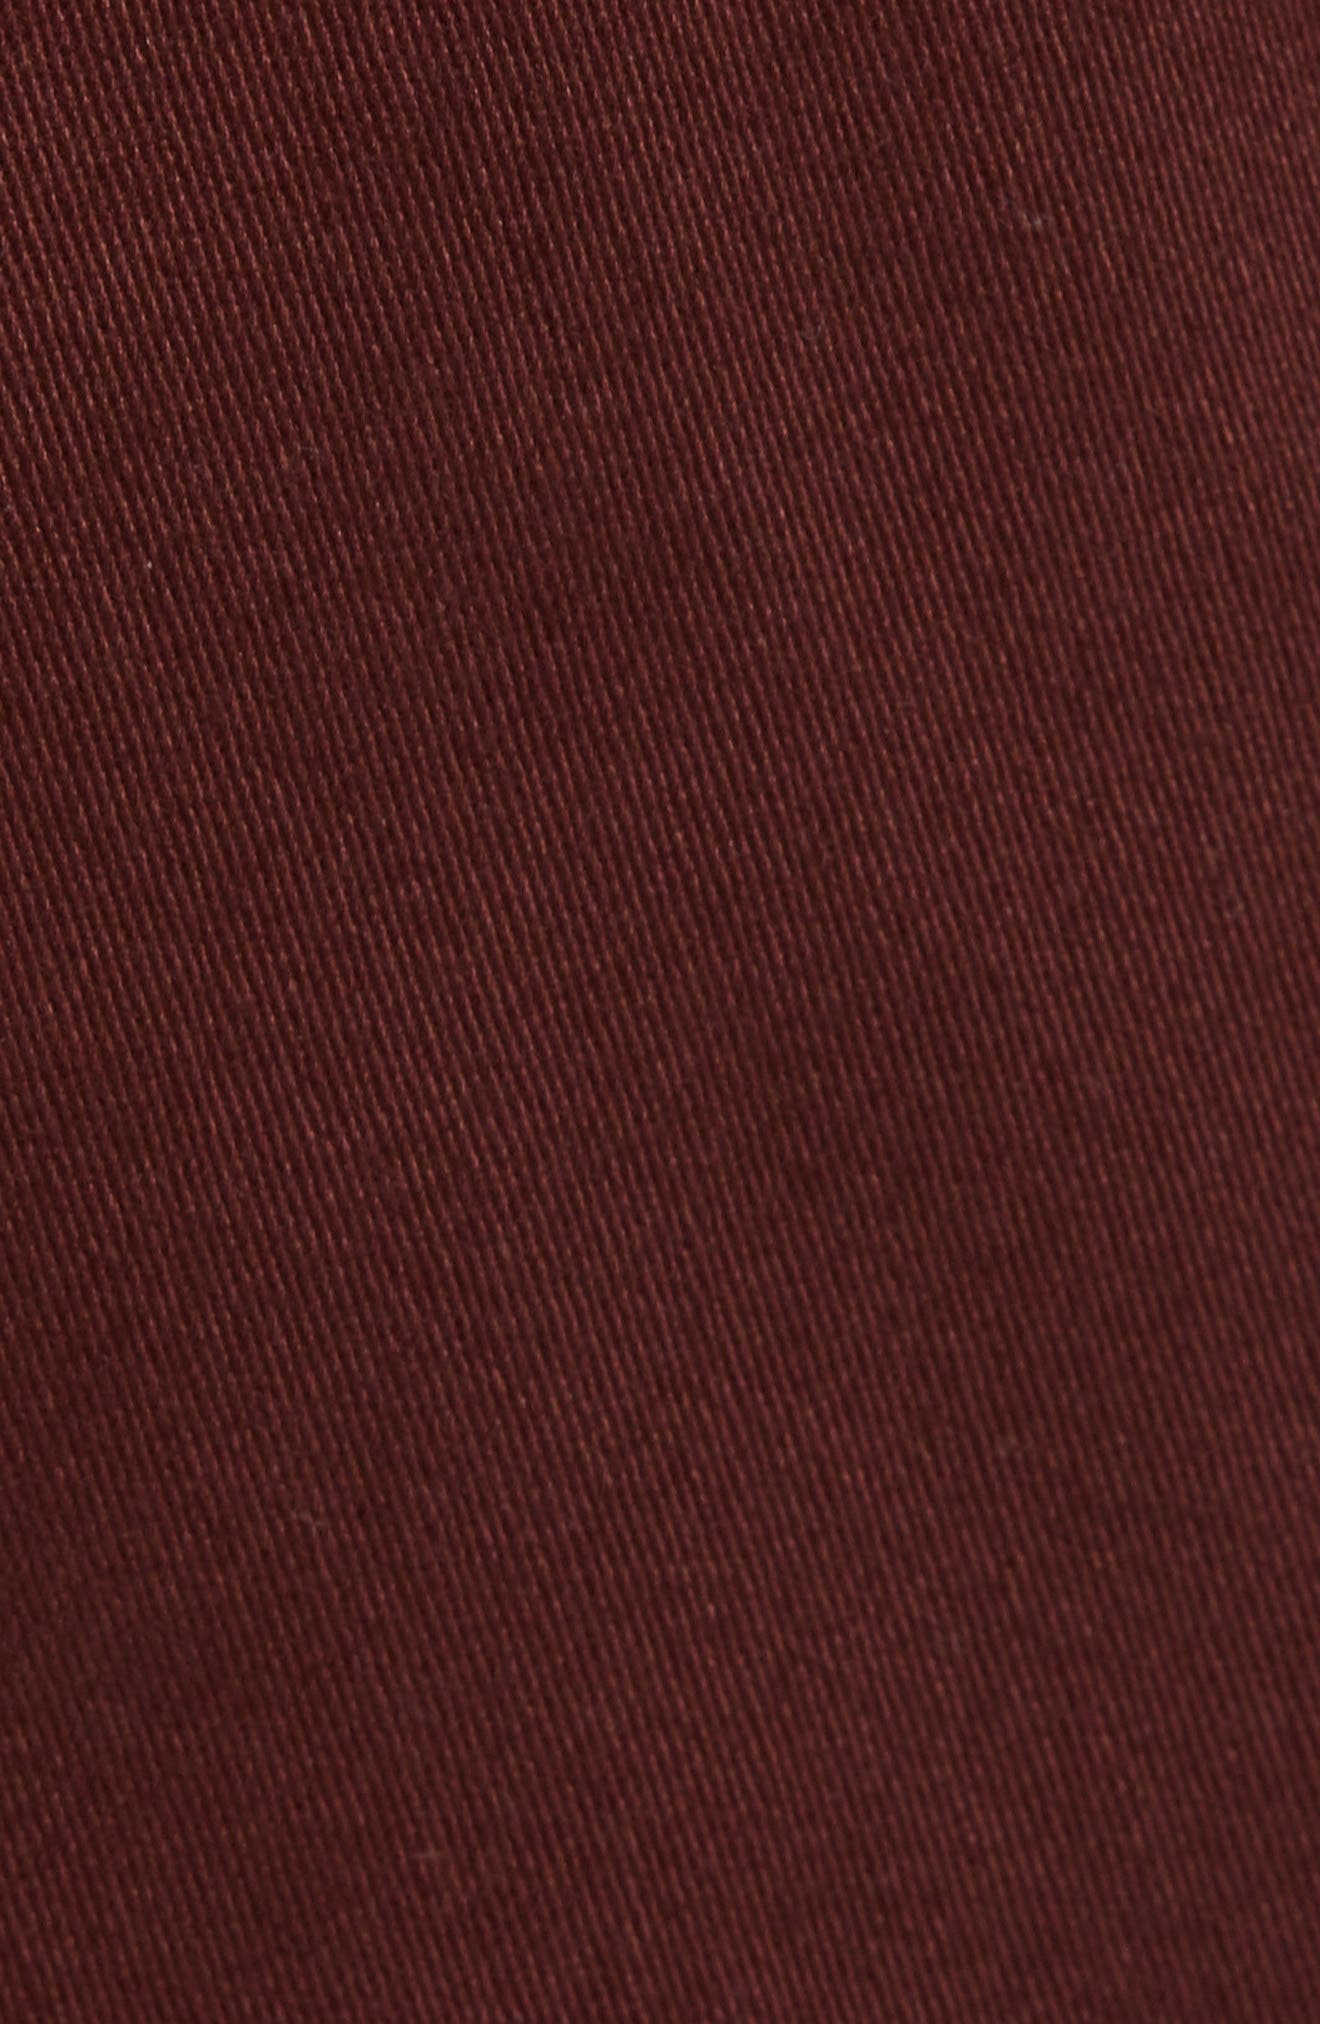 Weekday Shorts,                             Alternate thumbnail 5, color,                             Burgundy